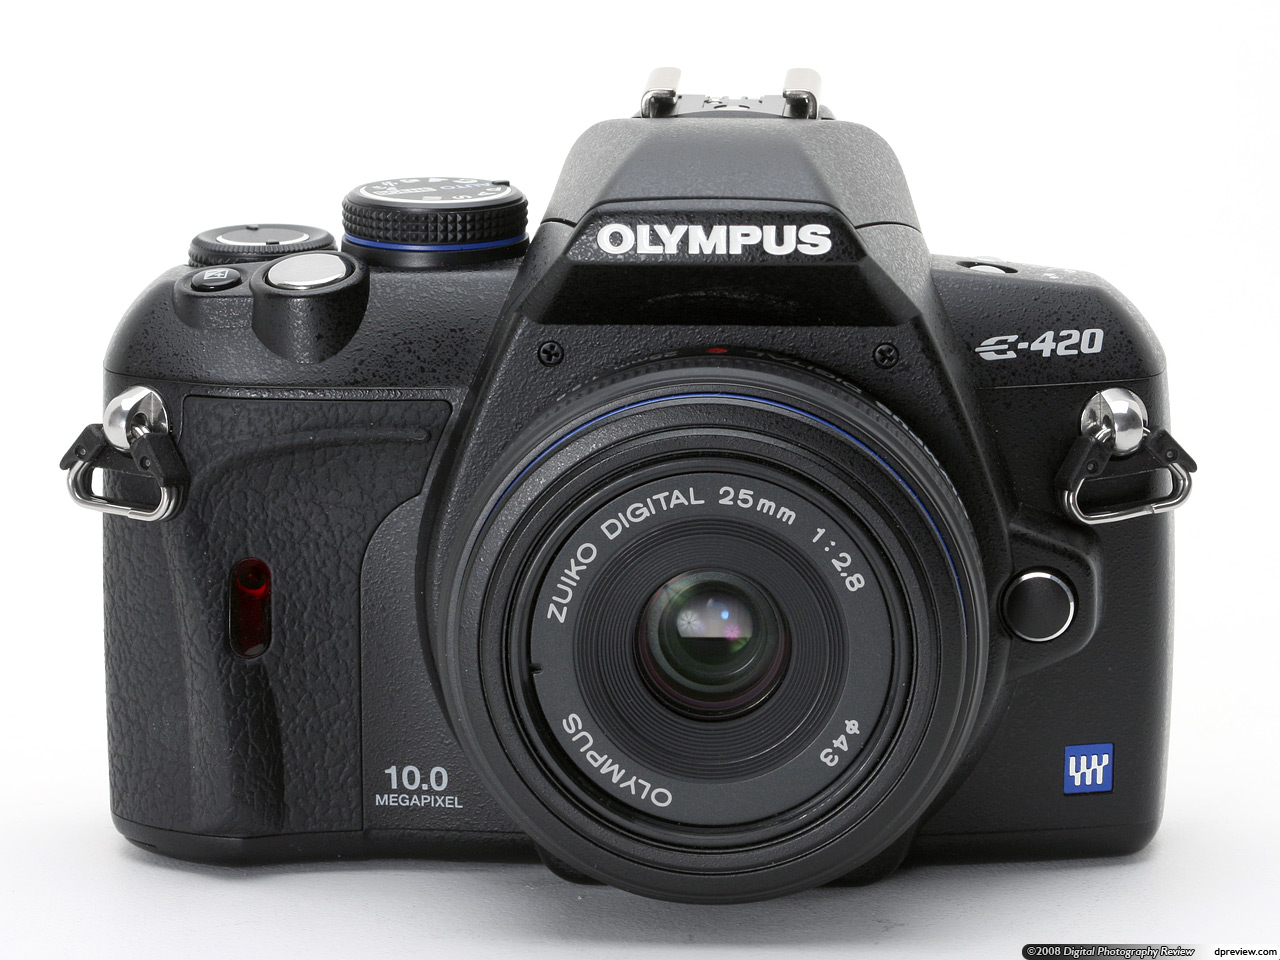 Camera Olympus Dslr Camera Reviews olympus e 420 review digital photography the is most junior member in line of slrs it was announced on 5th march 2008 exactly one year after t